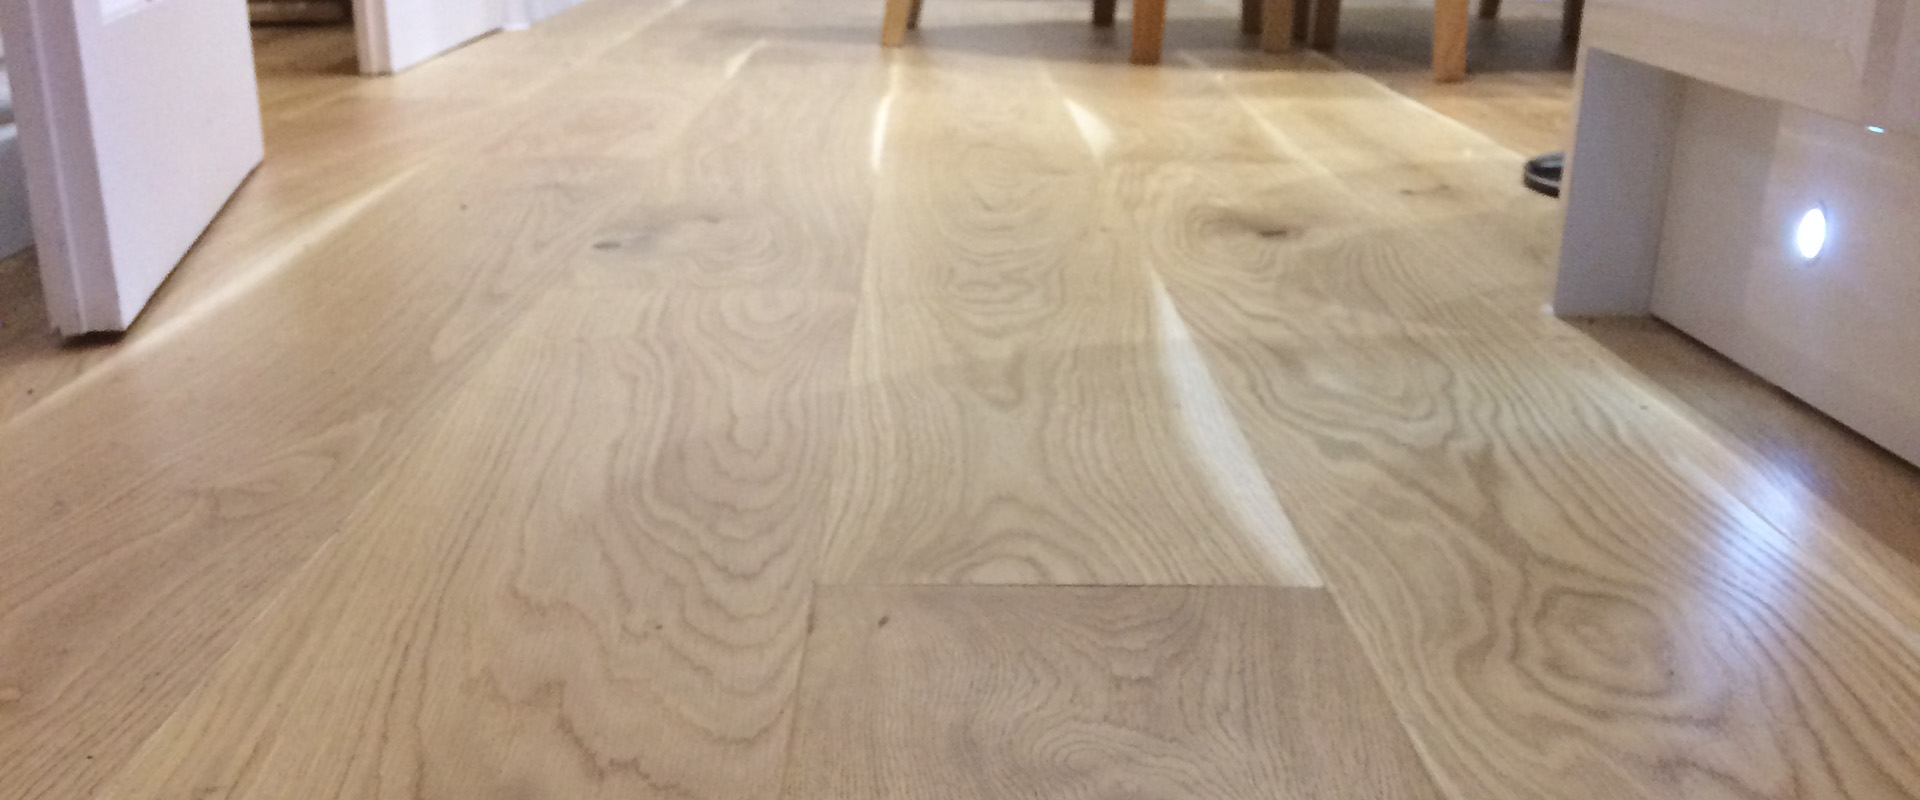 engineered wood flooring slider